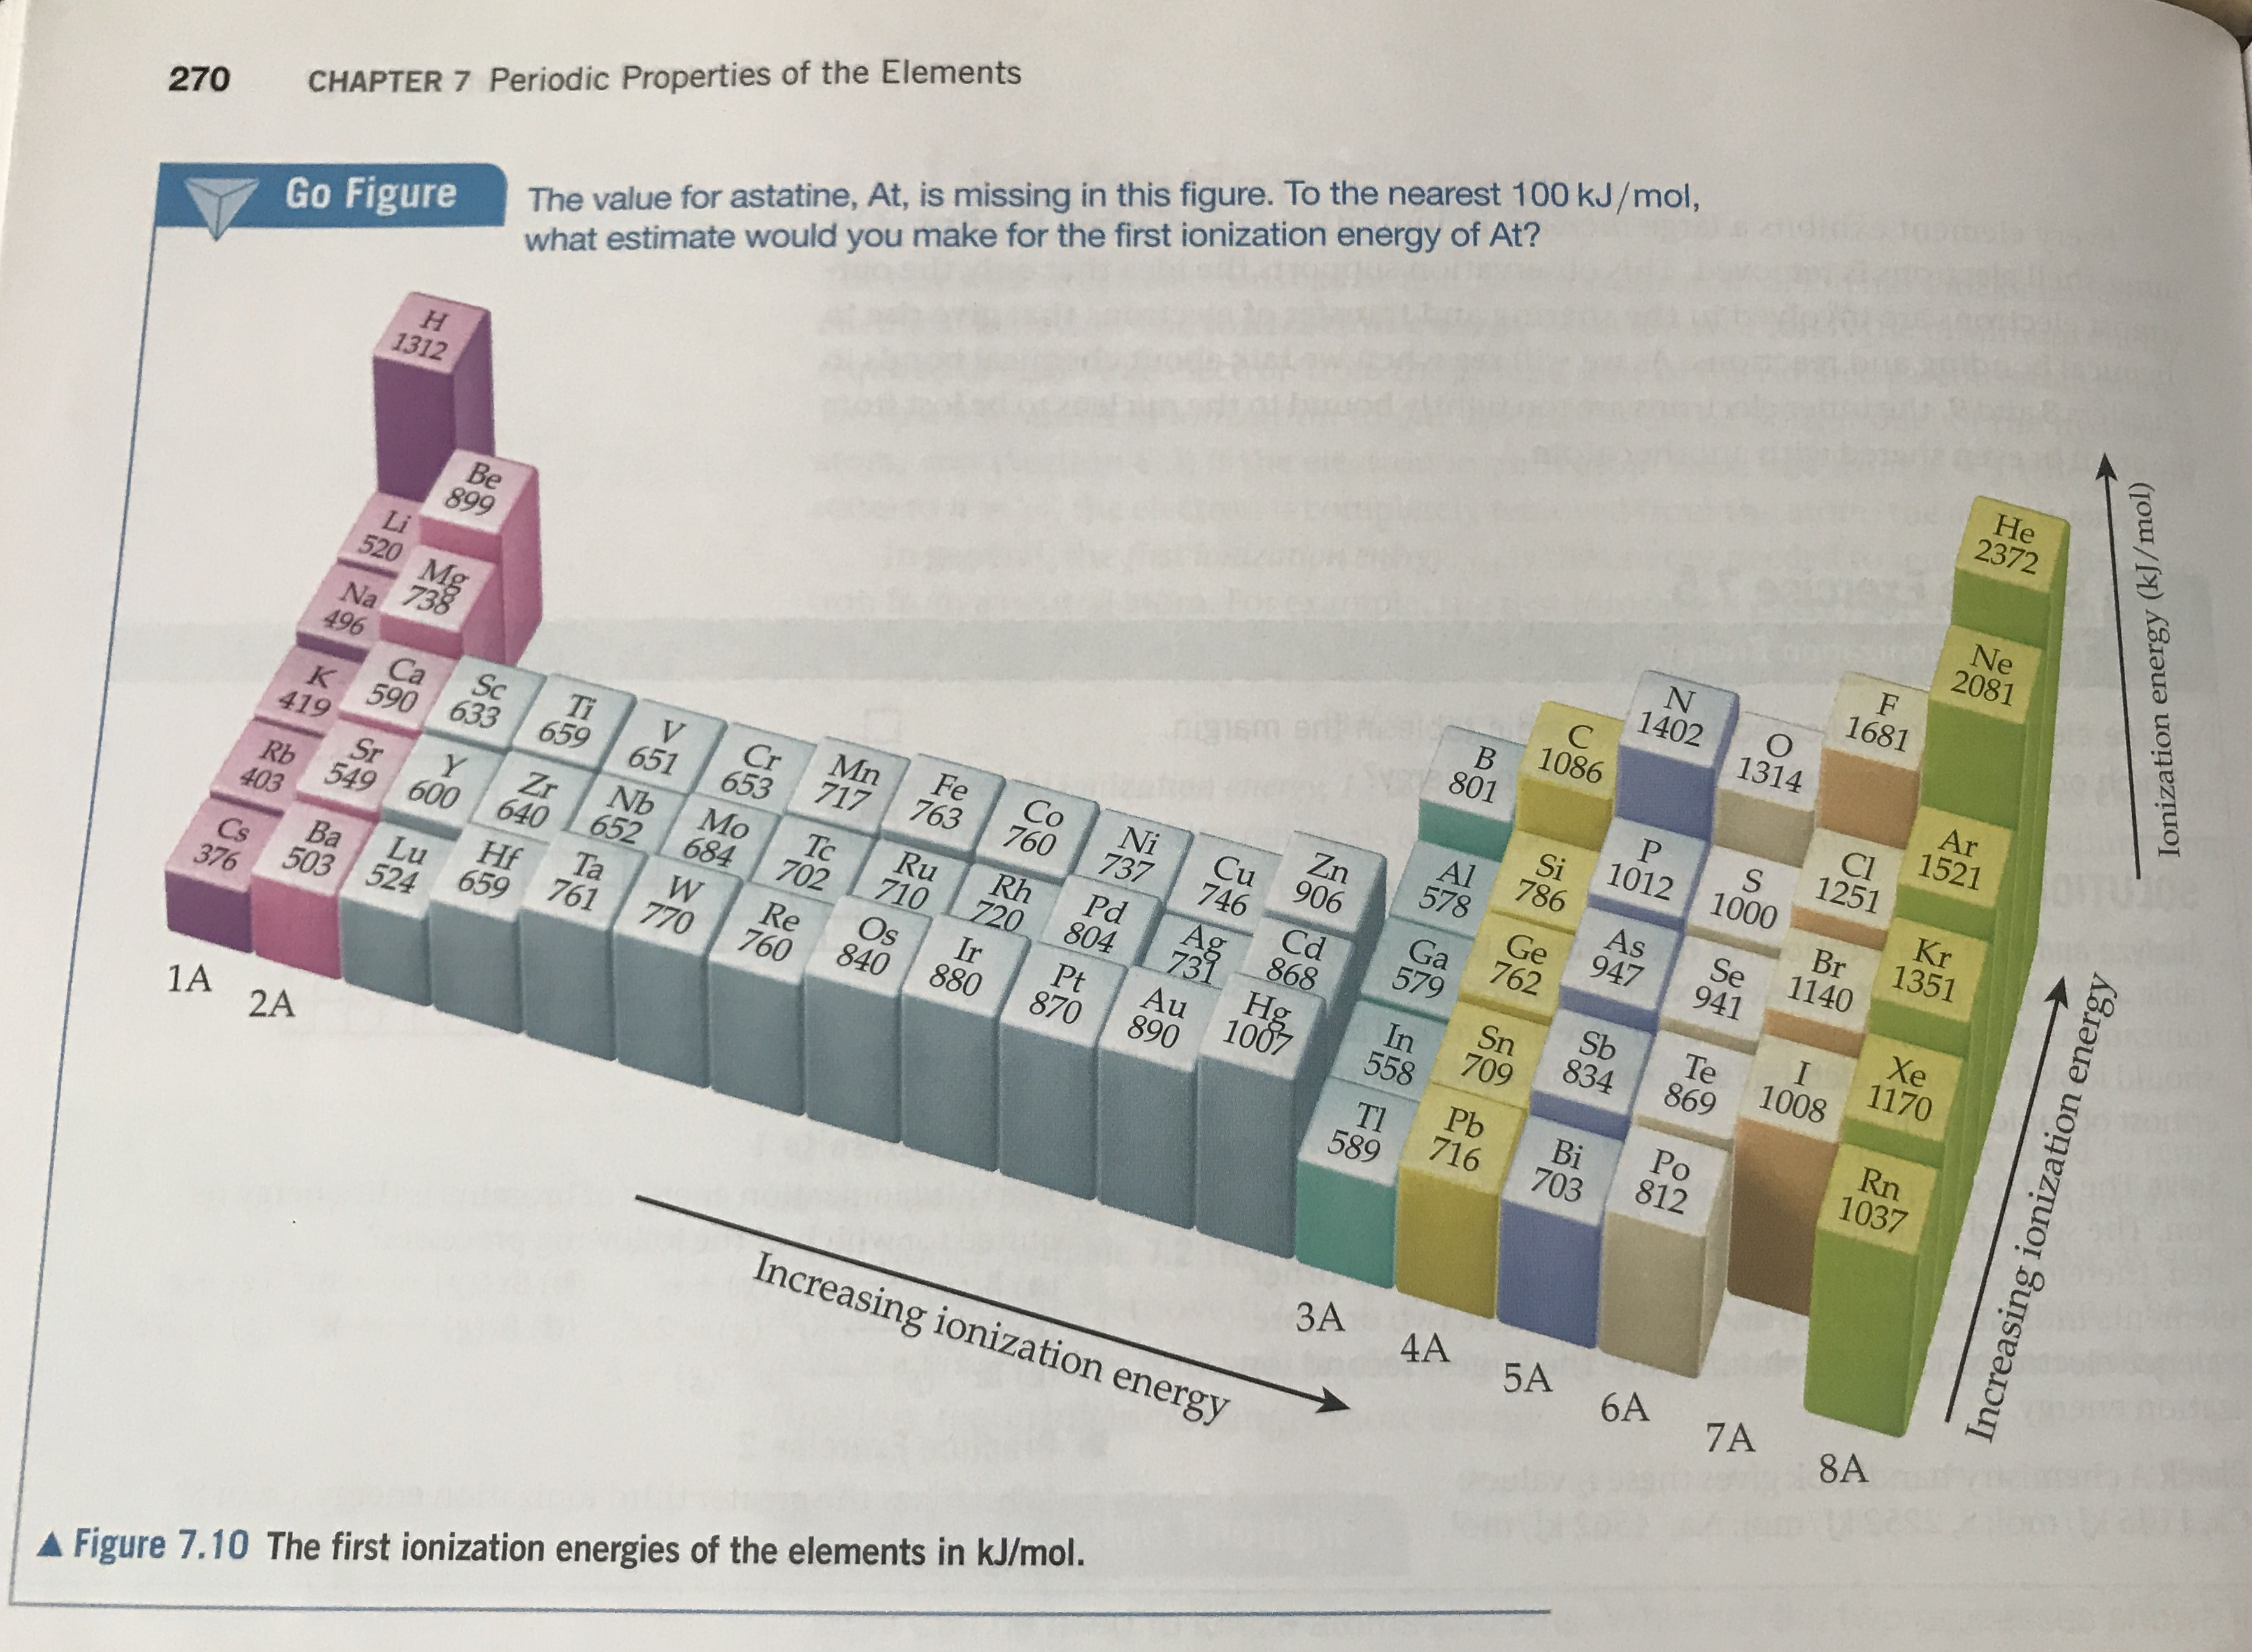 The value for astatine, At, is missing in this figure. To the nearest 100 kJ/mol, what estimate would you make for the first ionization energy of At? CHAPTER 7 Periodic Properties of the Elements He 2372 270 Go Figure Ne 2081 H 1312 F 1681 N 1402 O 1314 C Ar 1521 Be 899 1086 B ue wstthu 801 Cl 1251 Li 520 Mg 738 S 1012 1000 Kr 1351 Si 786 Br 1140 Al 578 Na As 947 Zn Cu 906 746 Se 941 496 Fe 763 Co 760 Ni 737 Mn 717 Ge 762 Ti 659 Sc V Cr Ca K 590 633 Xe 1170 Ga 579 651 653 Cd I 1008 Pd 804 Ag Rh 720 419 Ru 710 Ir Te 869 Sb 834 868 731 Hg 1007 Mo 684 Tc 702 Nb Zr 652 Y Sn 709 Sr Rb 549 600 640 Ta 761 In 558 Rn 1037 Au 890 Pt 870 Os 403 Re 760 Hf 659 880 Po 812 840 Pb 716 770 Lu Ba 503 524 Bi 703 Tl 589 Cs 376 1A 2A 3A 4A 5A 6A 7A 8A Increasing ionization energy AFigure 7.10 The first ionization energies of the elements in kJ/mol. Increasing ionization energy Ionization energy (kJ/mol)